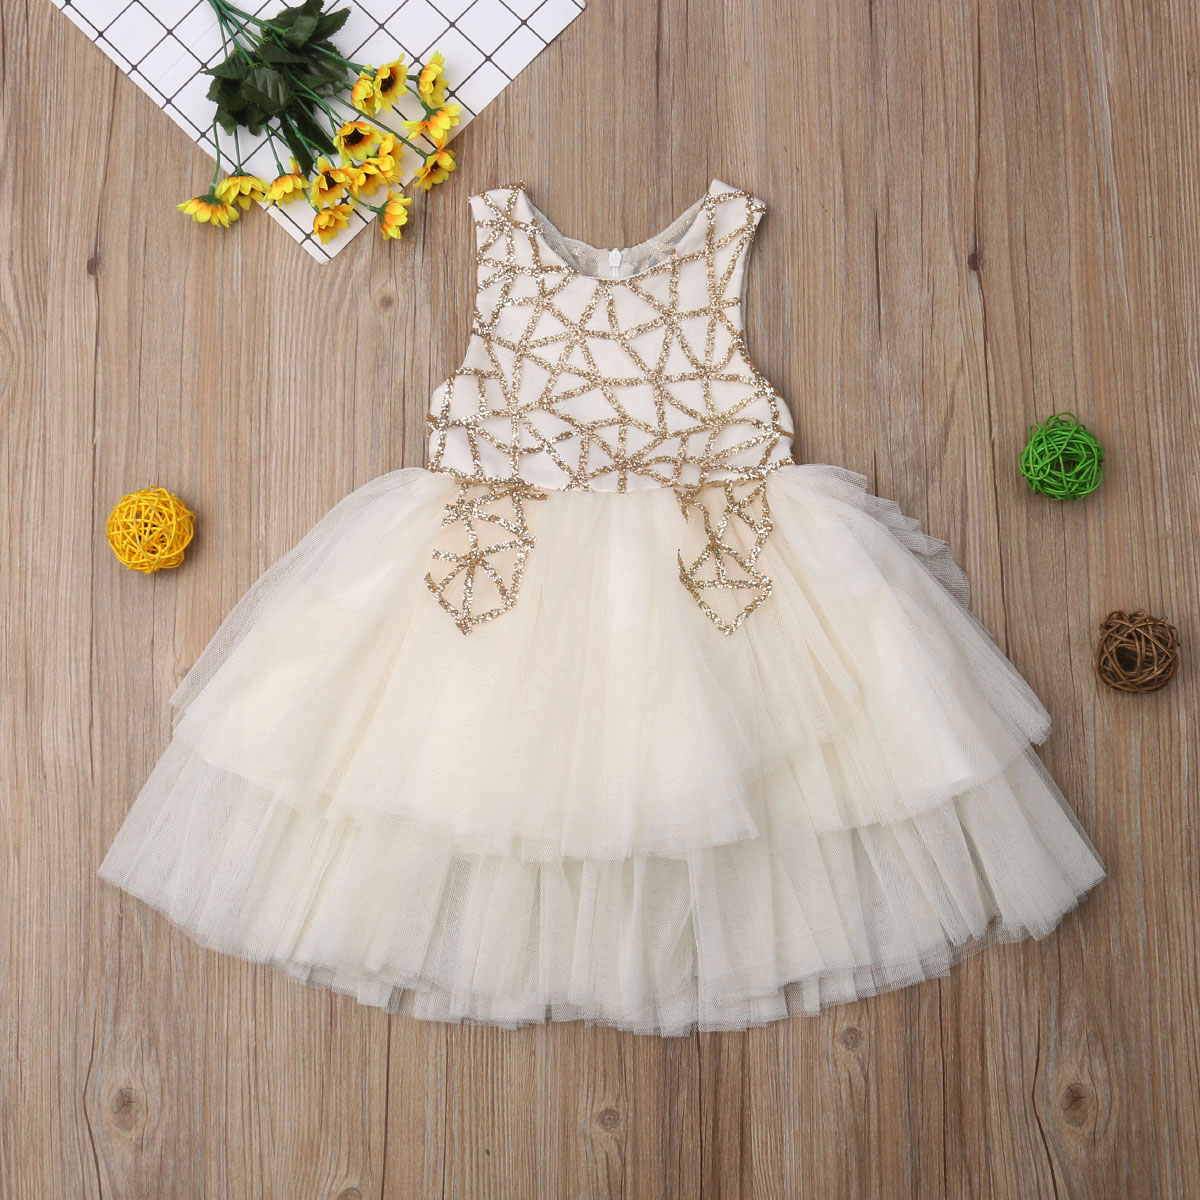 1 5Years Kid Baby Girls Dress Princess Party Wedding Birthday Tutu Dresses For Girls Sequins Tulle Dress 2019 Christmas Costumes in Dresses from Mother Kids